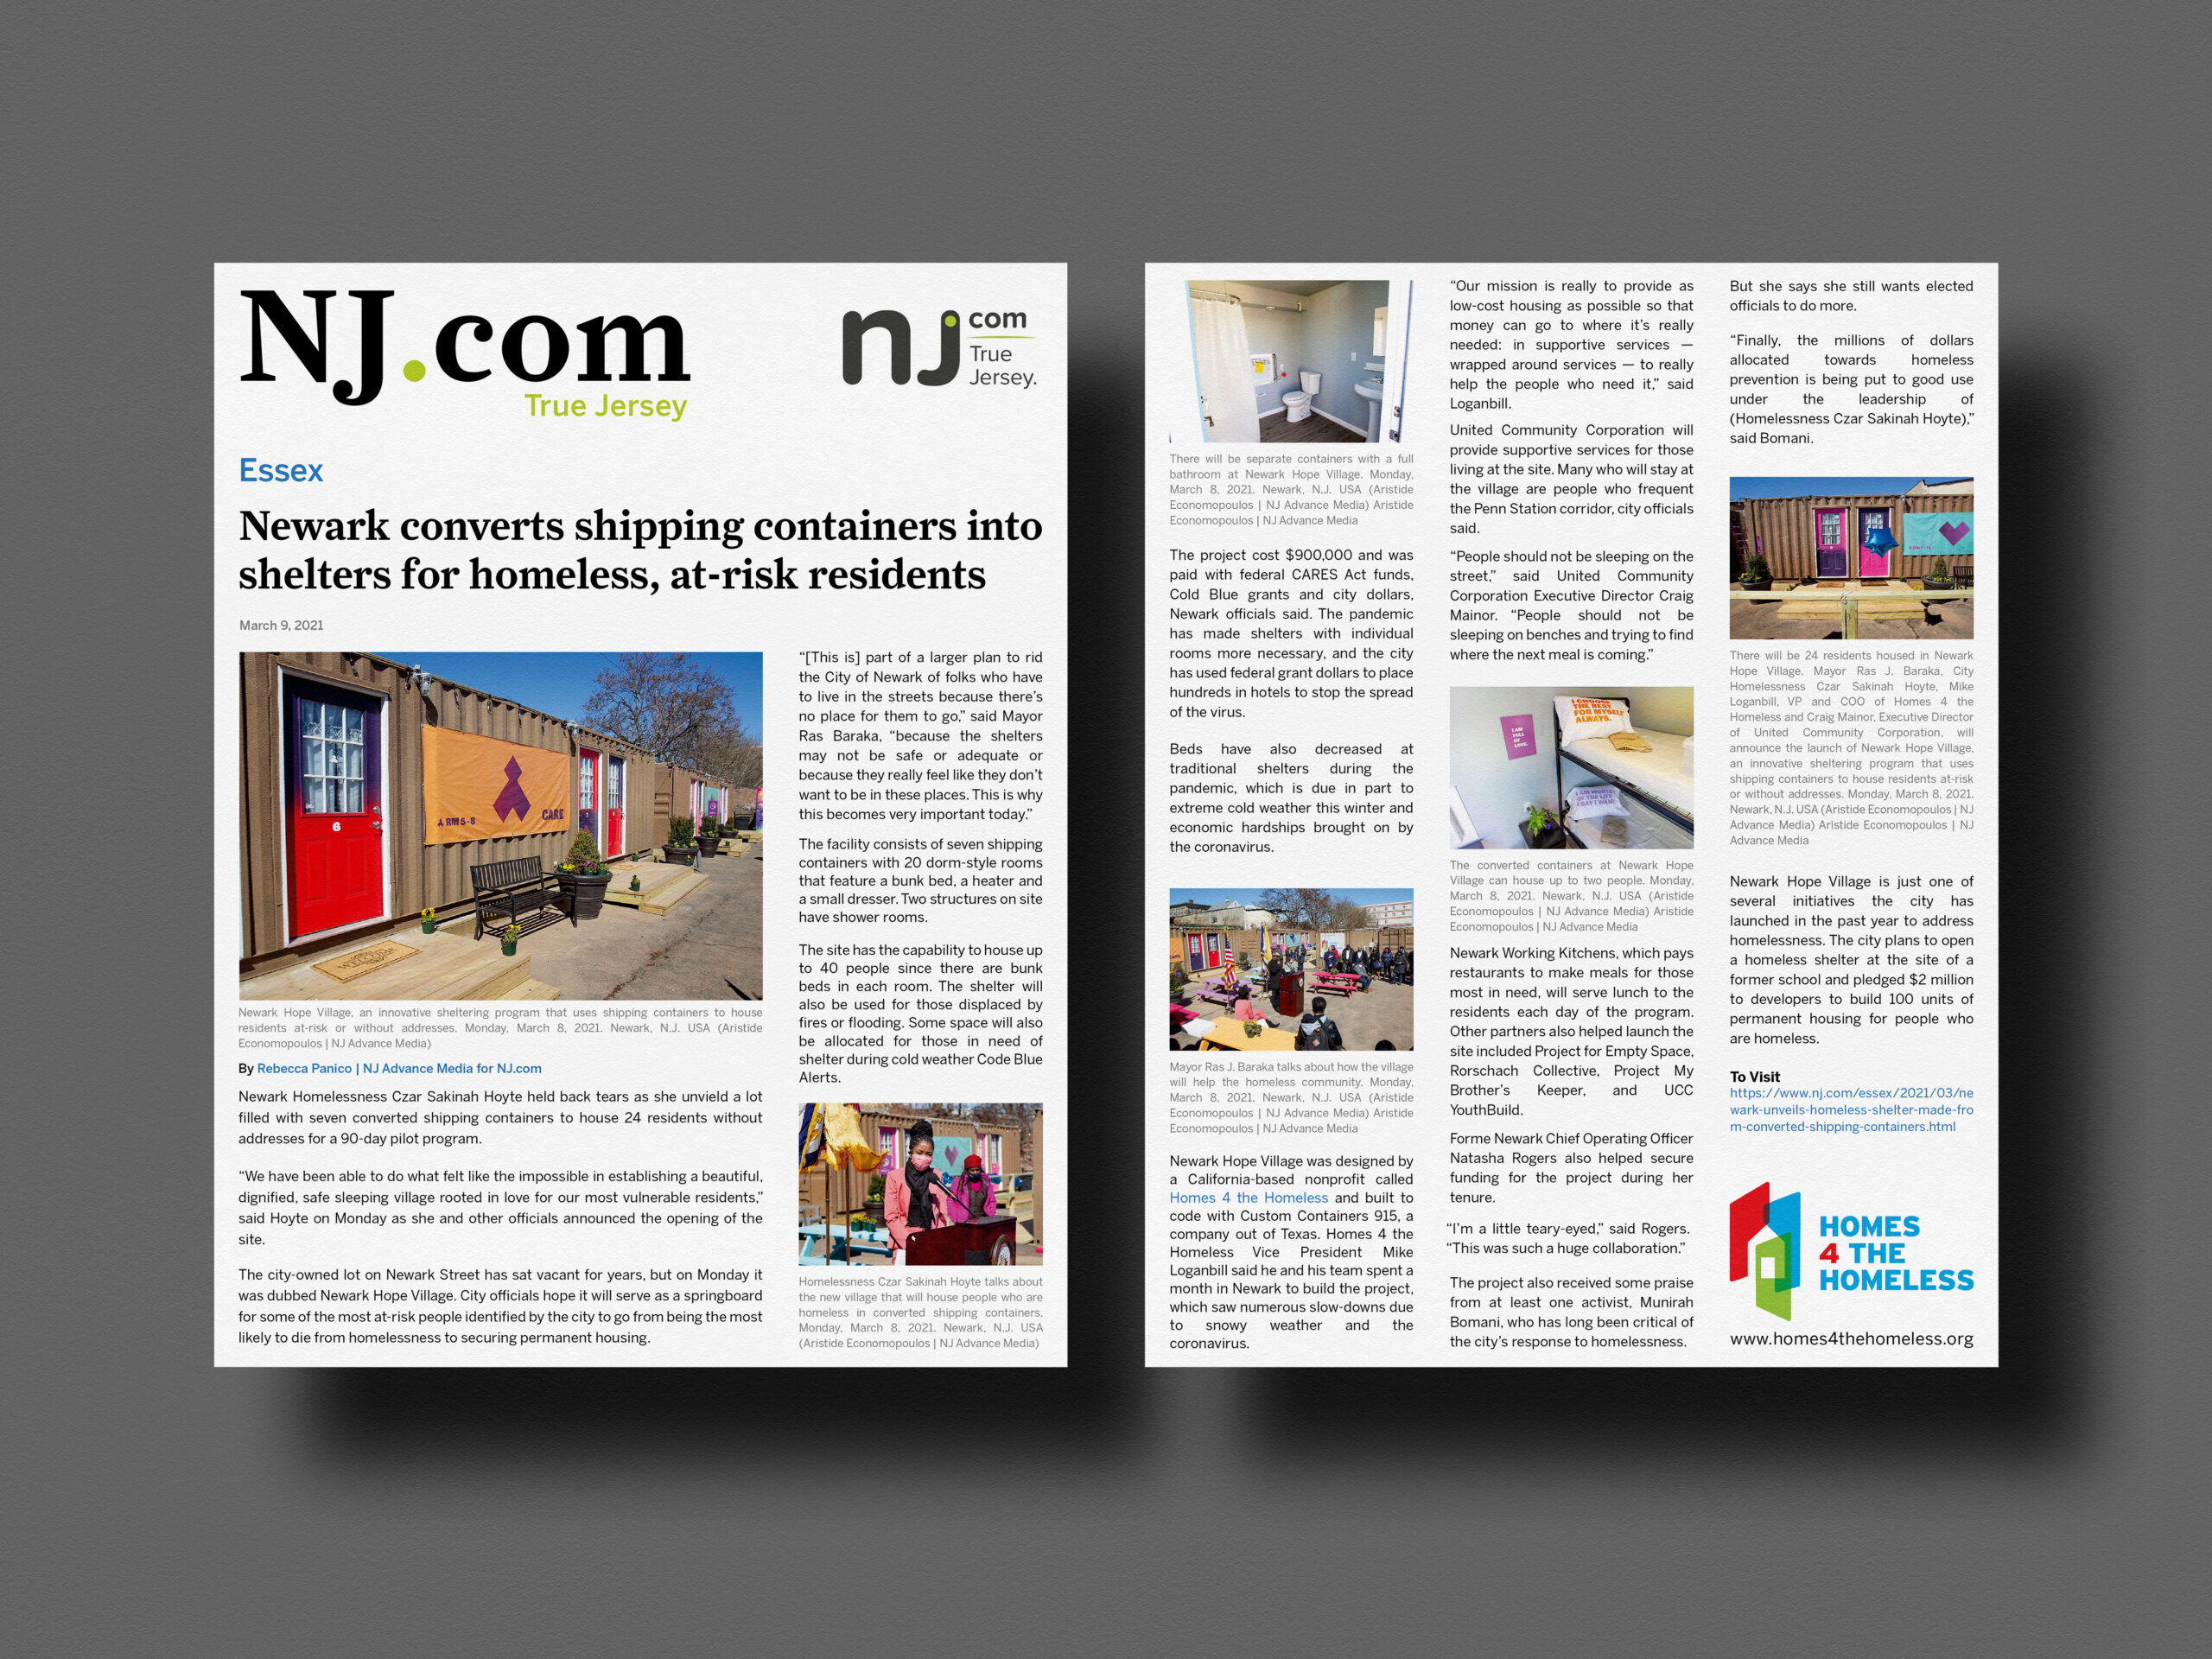 NJ.com Essex Edition March 8, 2021 2-page article with several photos